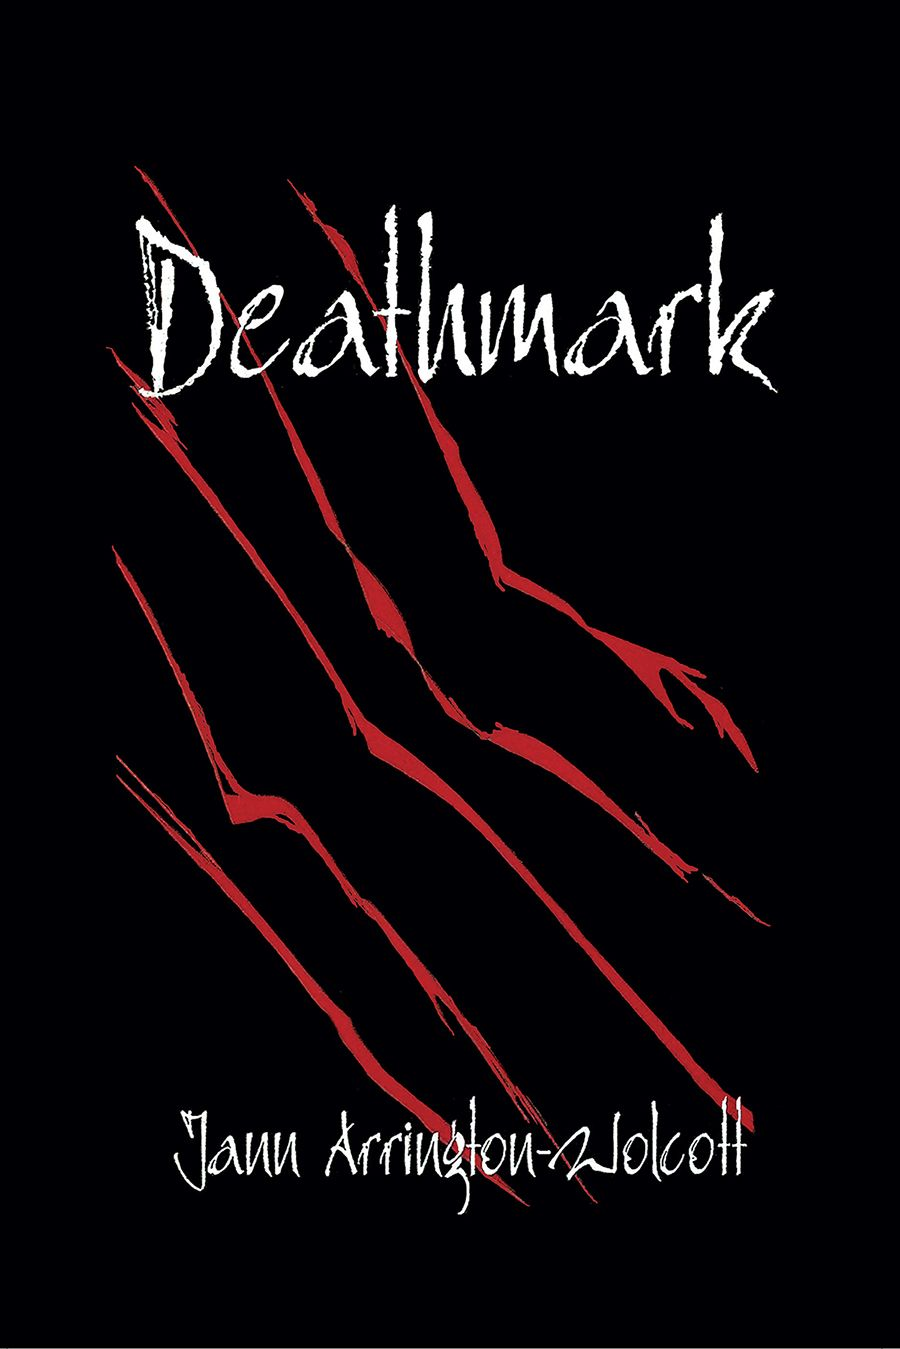 DEATHMARK by Jann Arrington-Wolcott.Great mystery/suspense. Older woman and younger man. Is he who he says he is and what is the strong attraction between them? Do the dreams that inform her work have any connection? Great read!